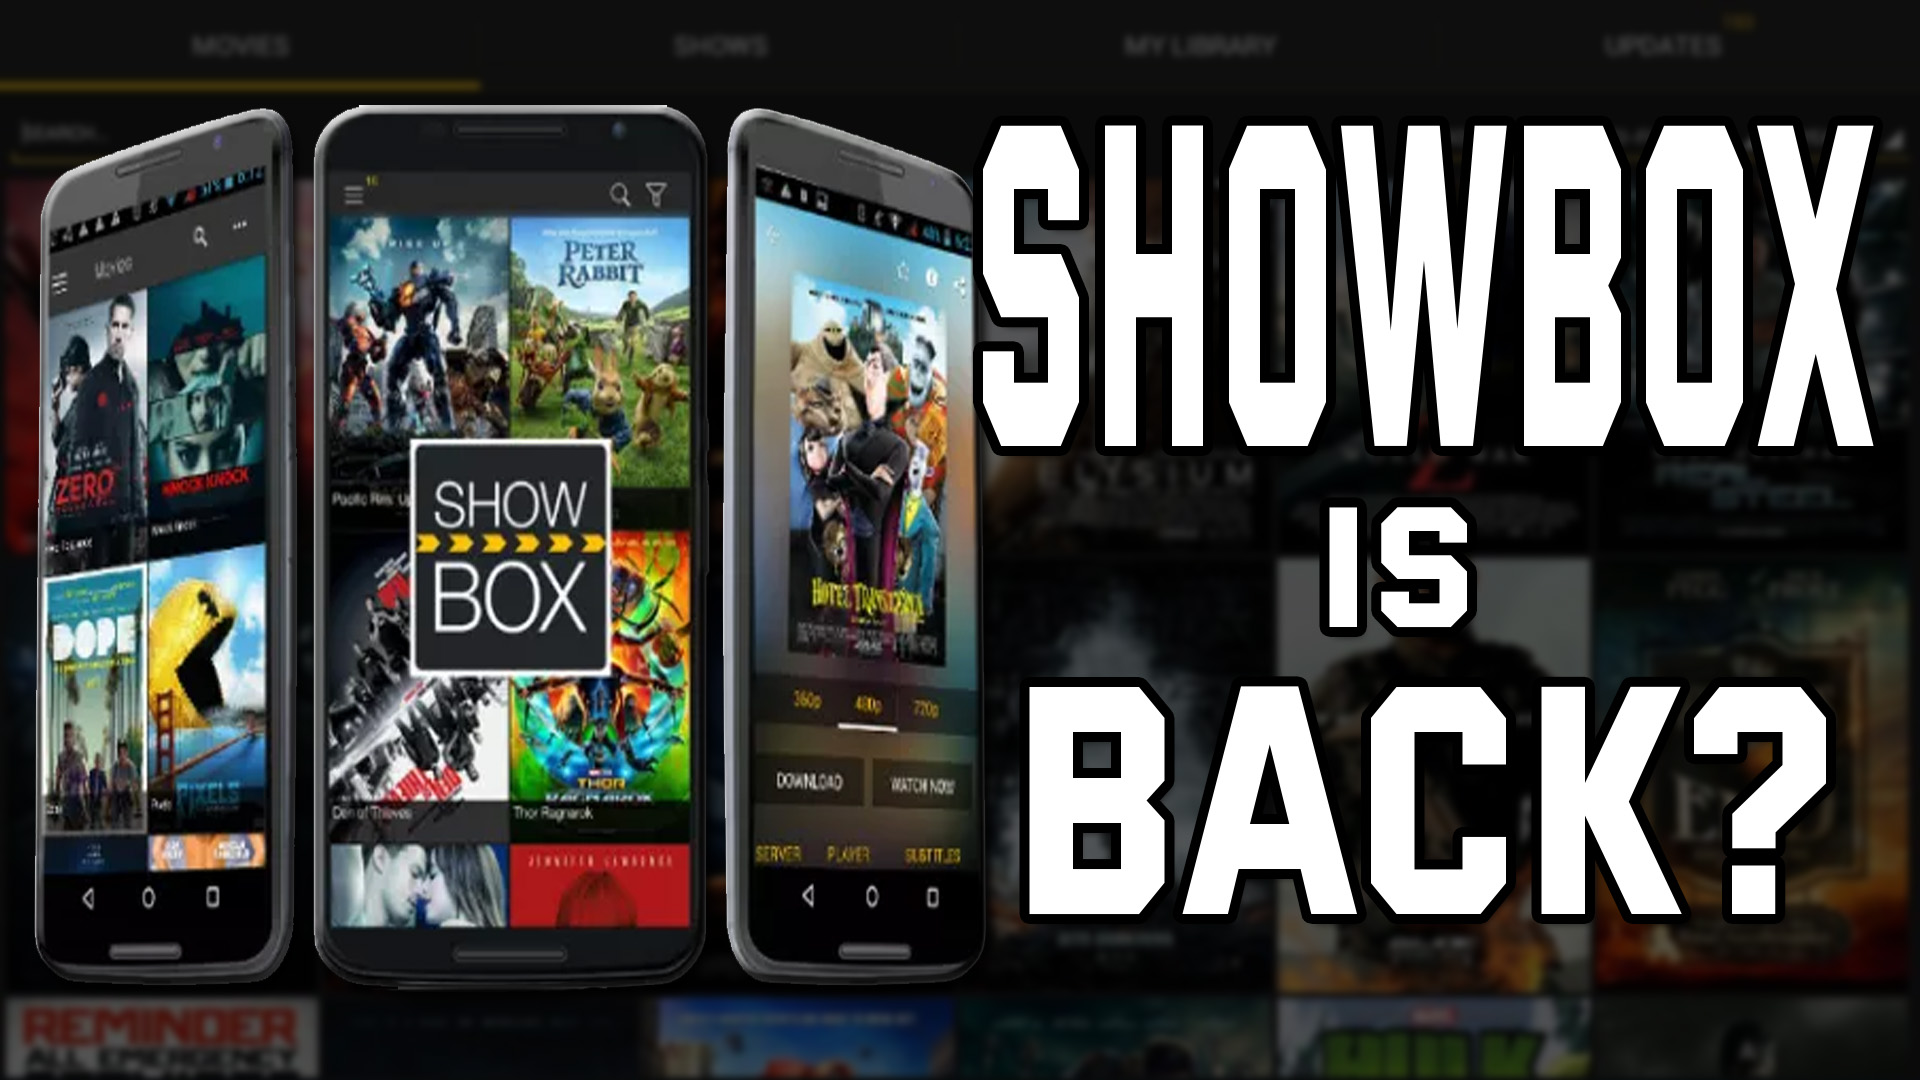 Showbox is back